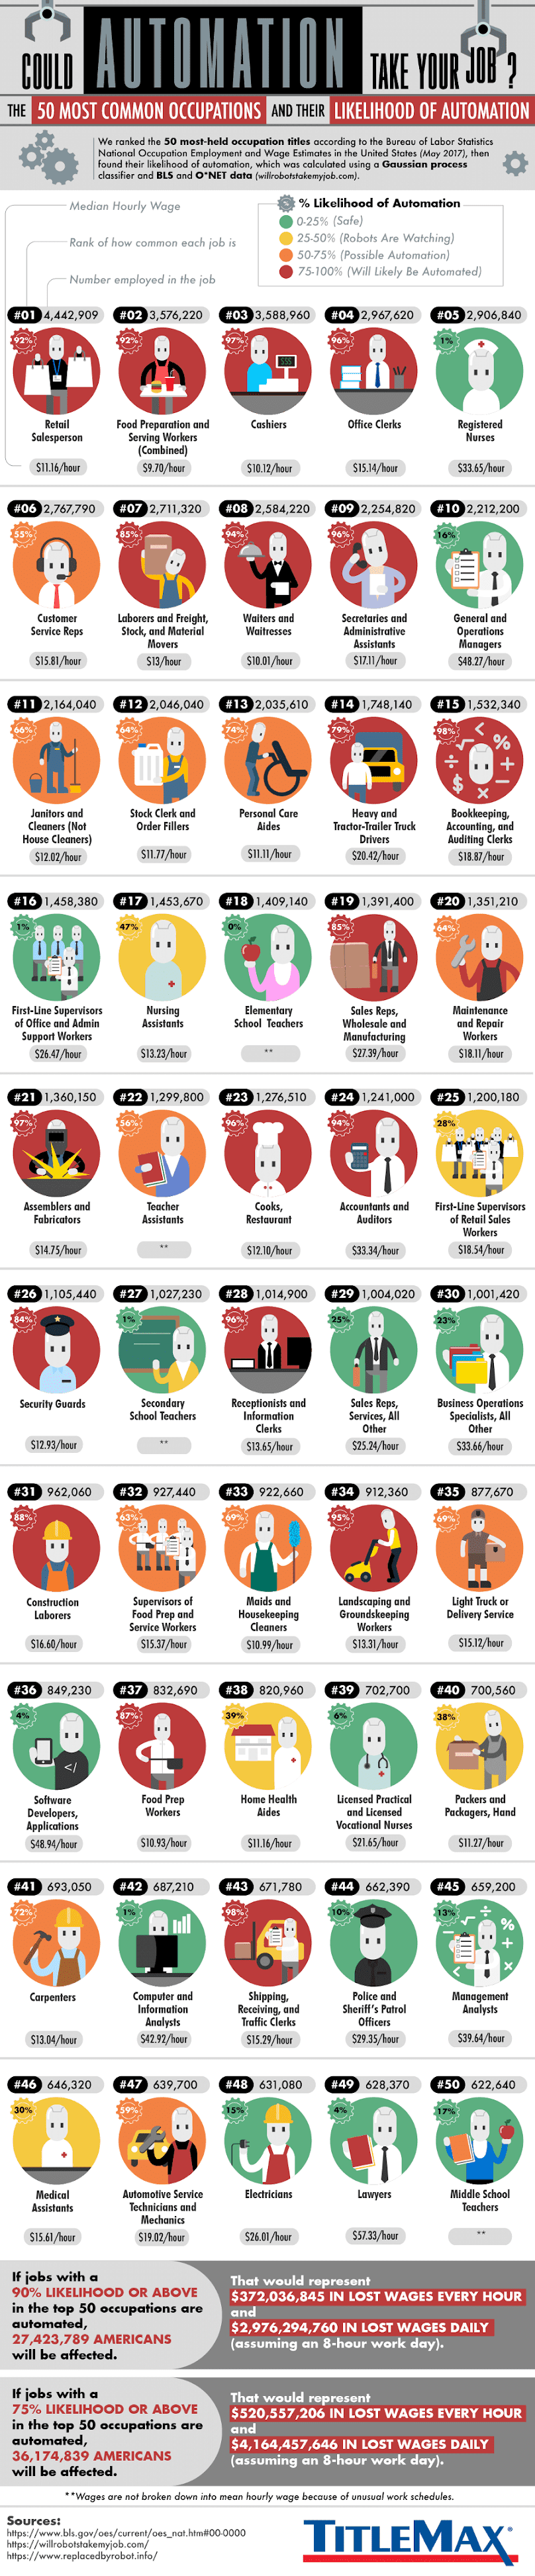 Robots Will Take Over These 50 Jobs Very Soon